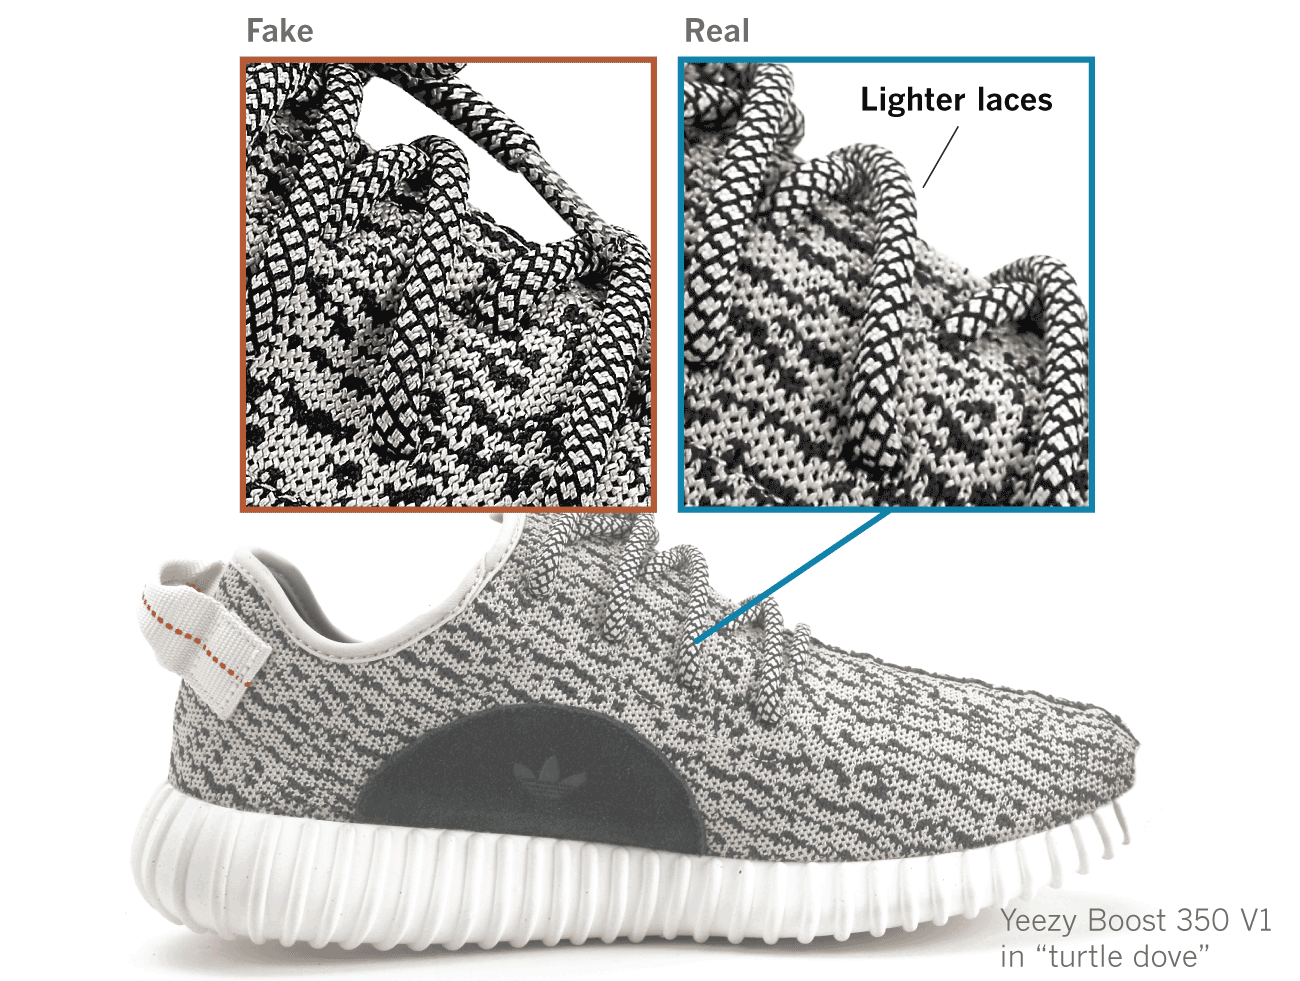 a6fe14aee8ac Replicating the highly coveted and commercially successful Adidas Yeezy has  become so sophisticated that even some of the most astute fans can t tell  the ...